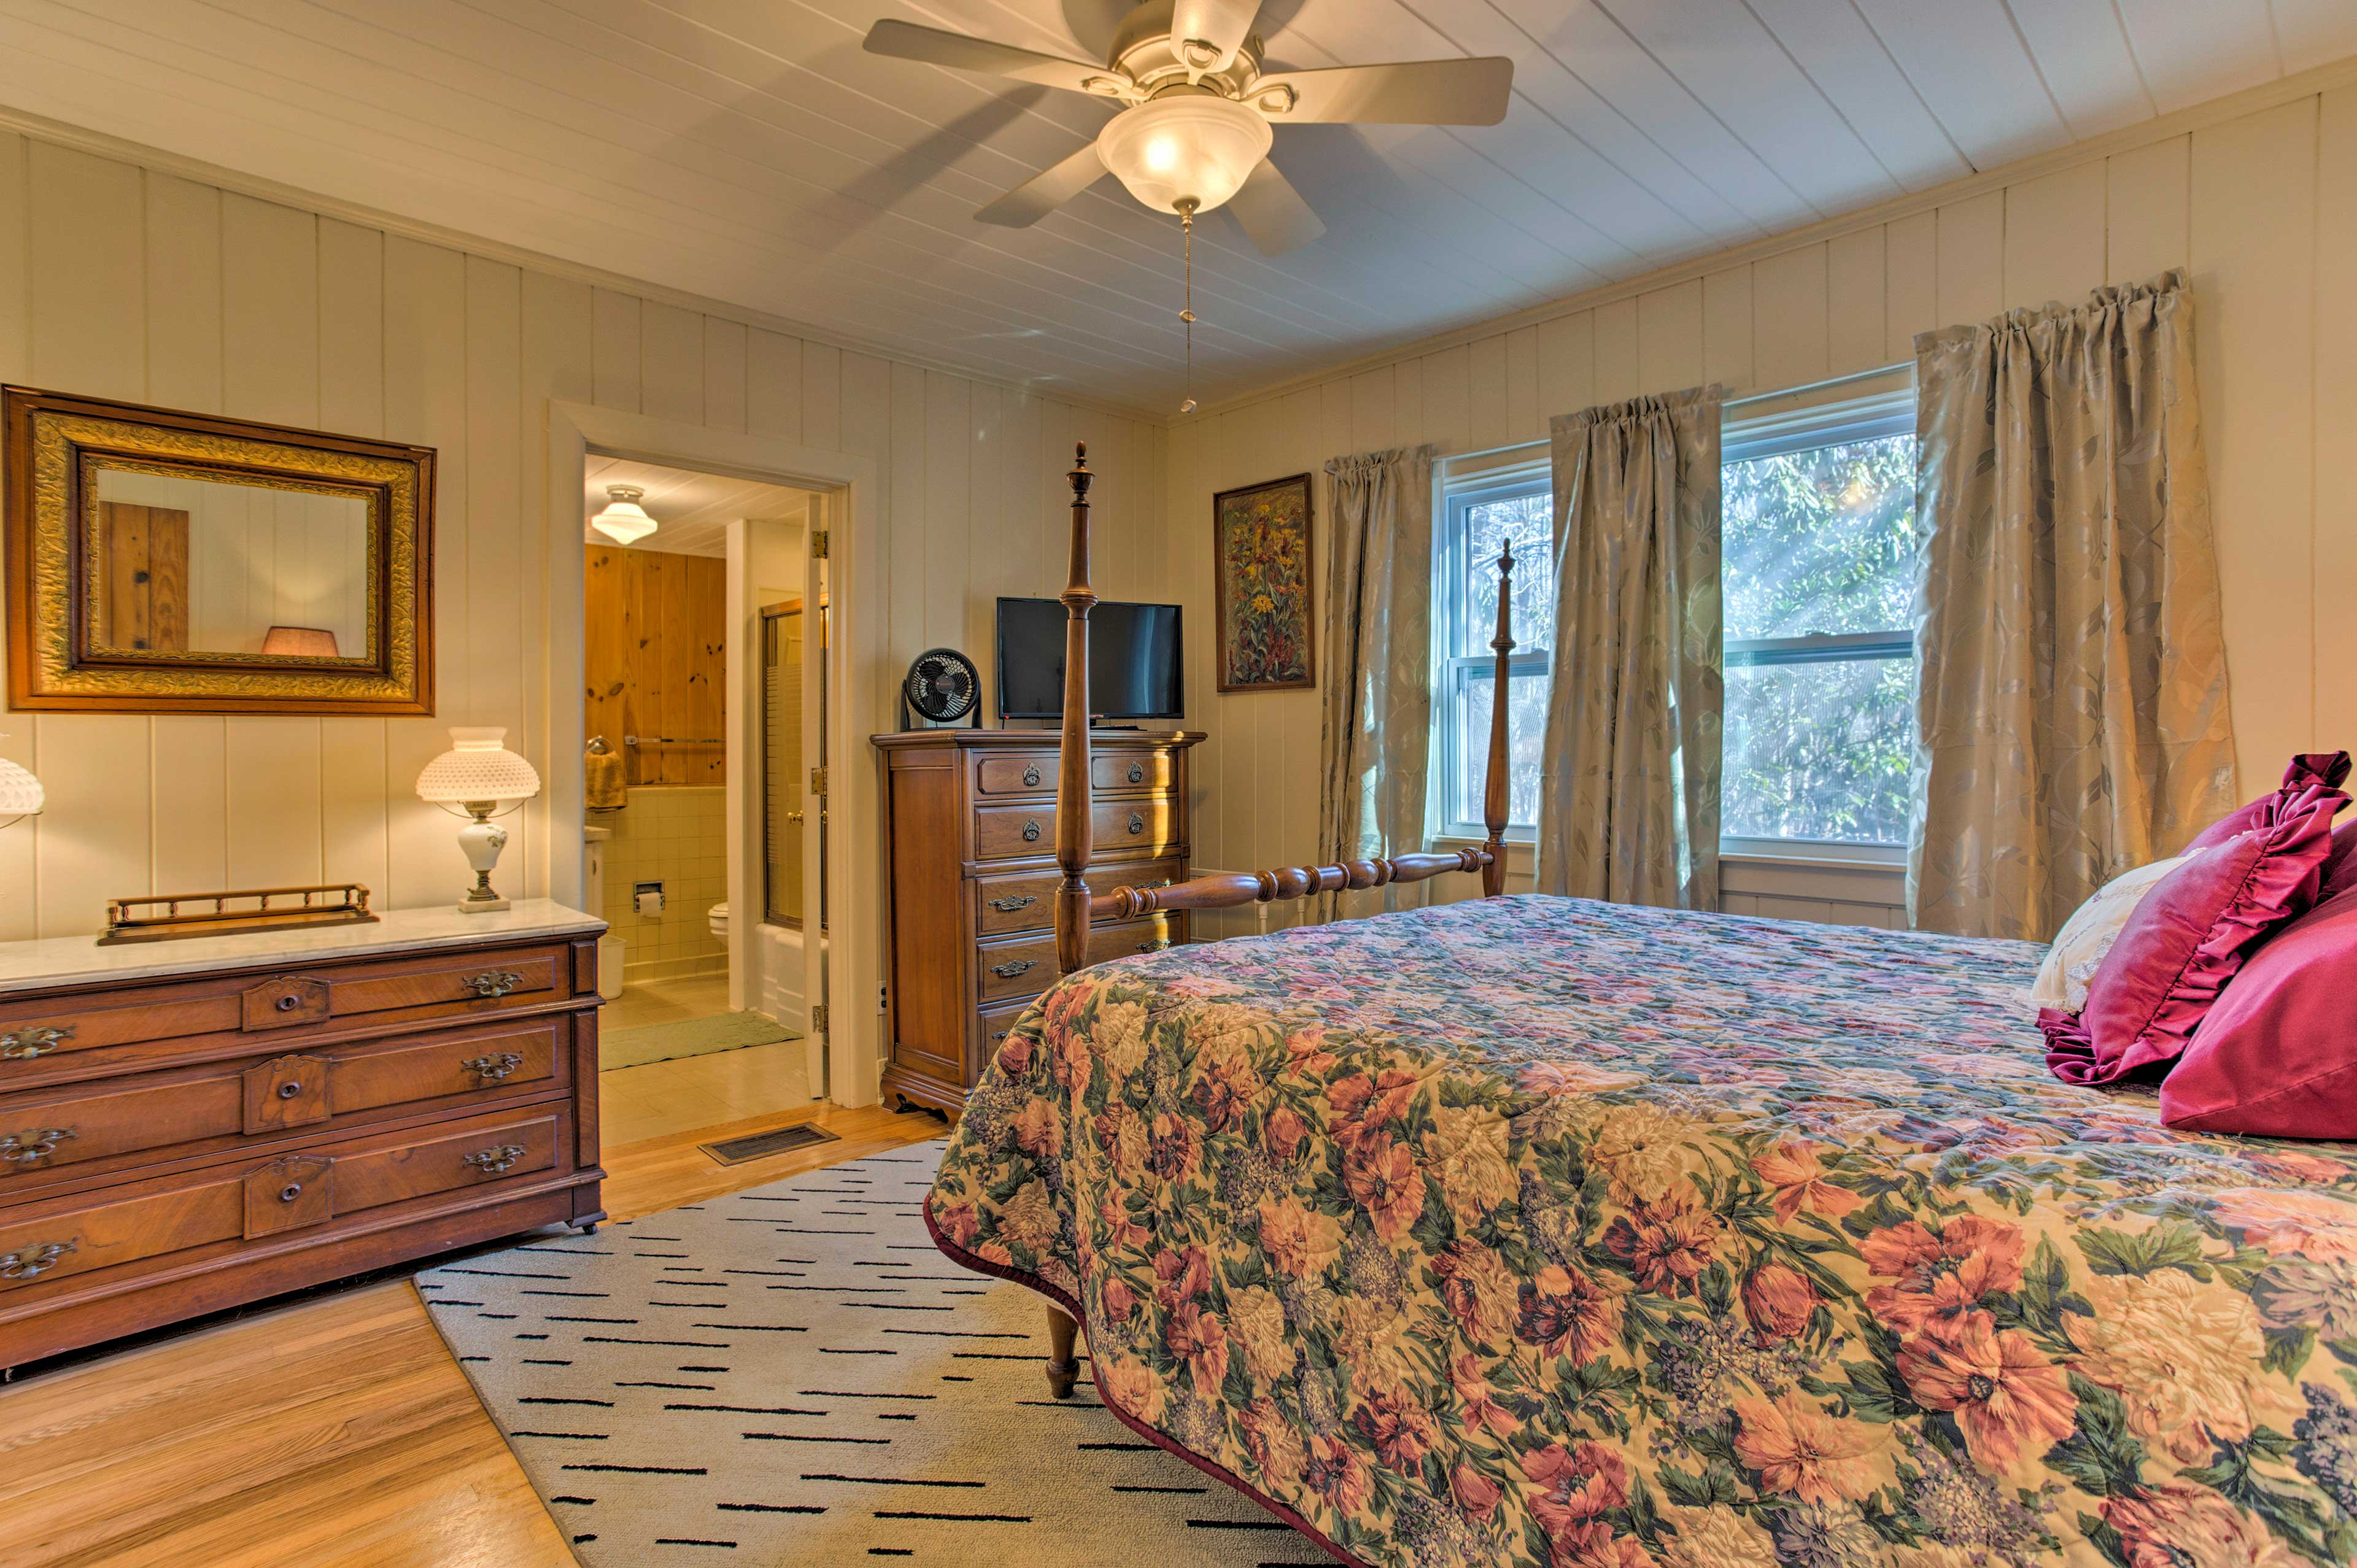 The master bedroom includes a flat-screen cable TV and en-suite bathroom.